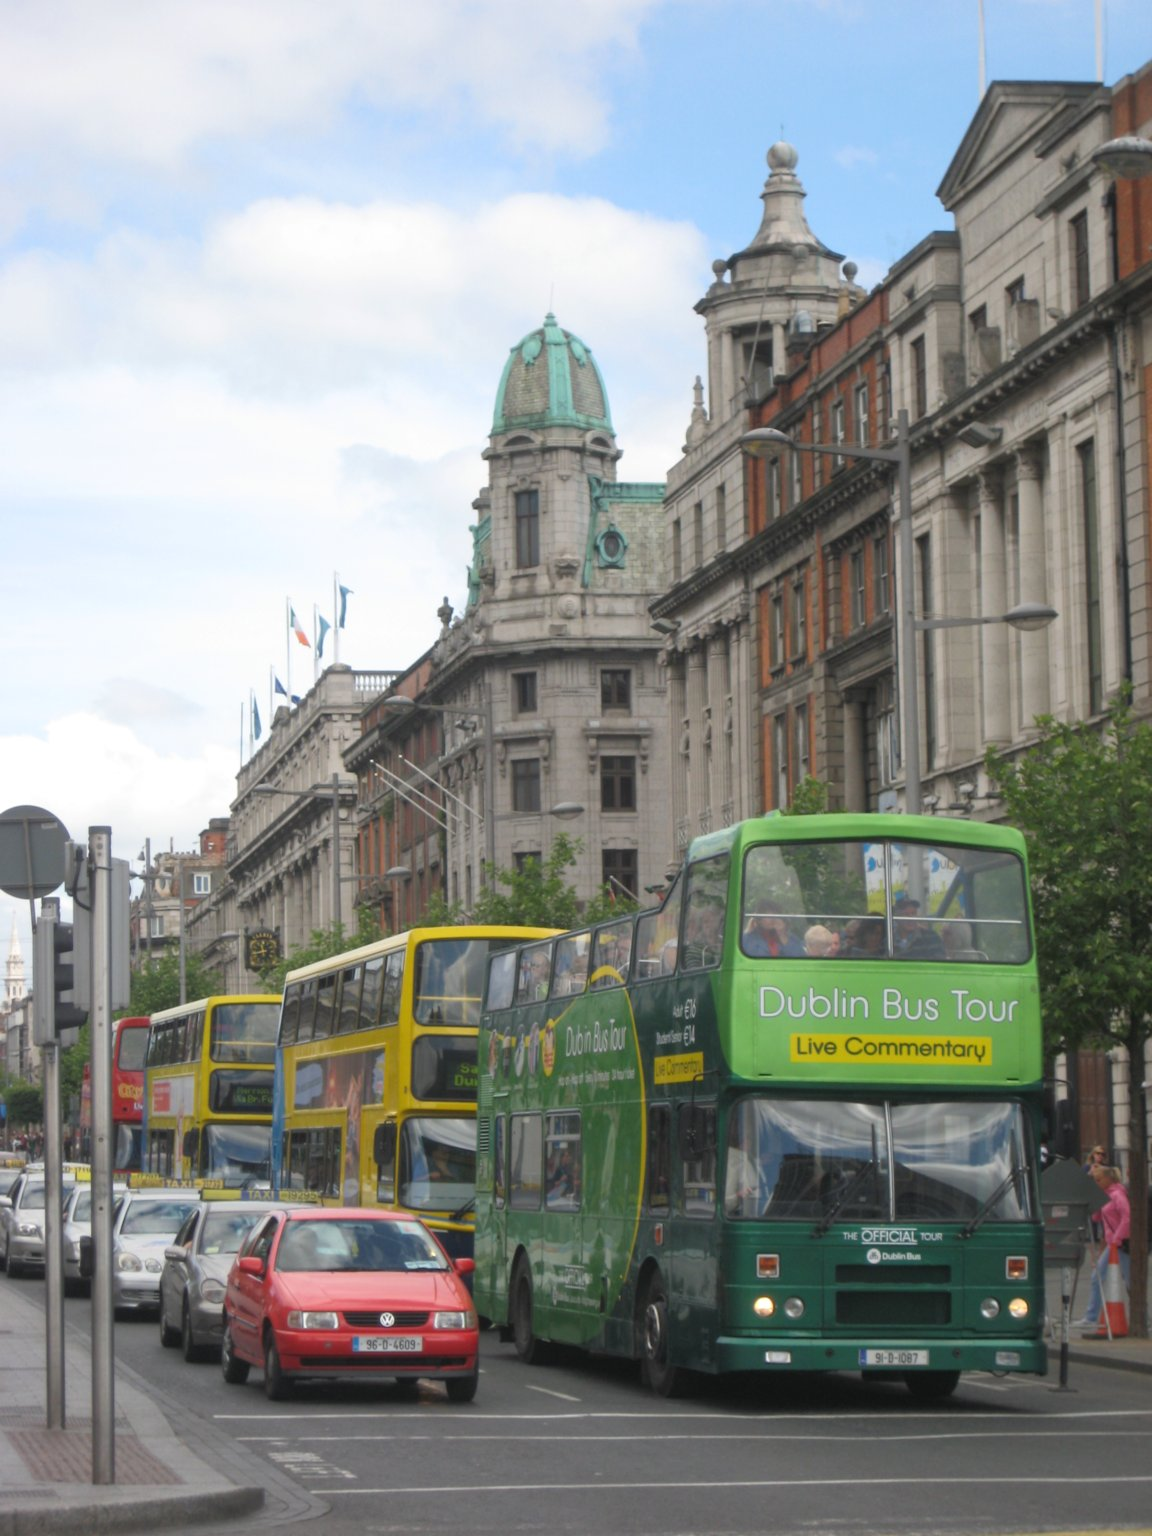 Dublin city tour buses